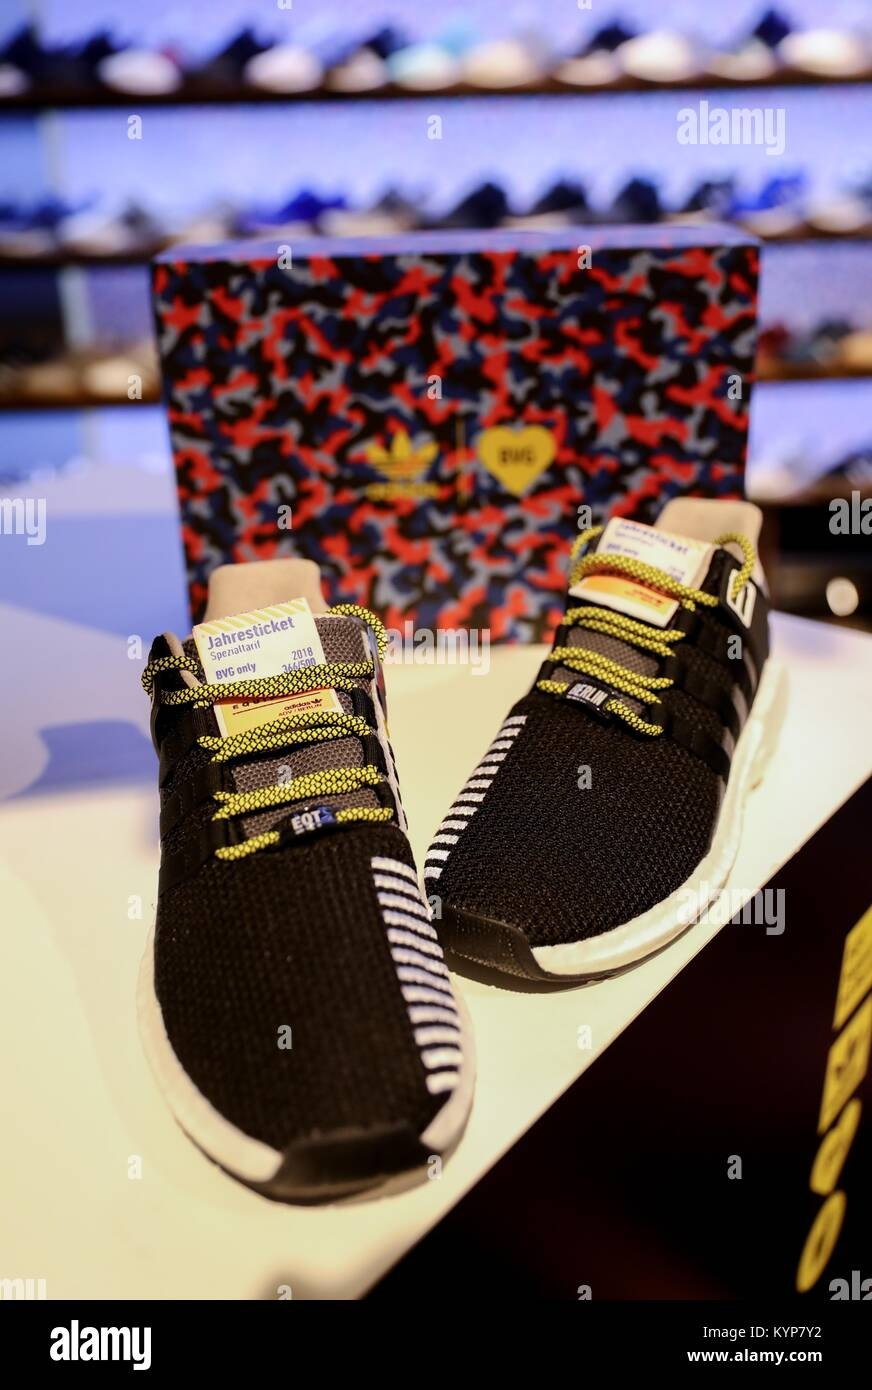 mayor descuento 60% barato buscar auténtico Berlin, Germany. 16th Jan, 2018. A pair of the coveted Adidas ...